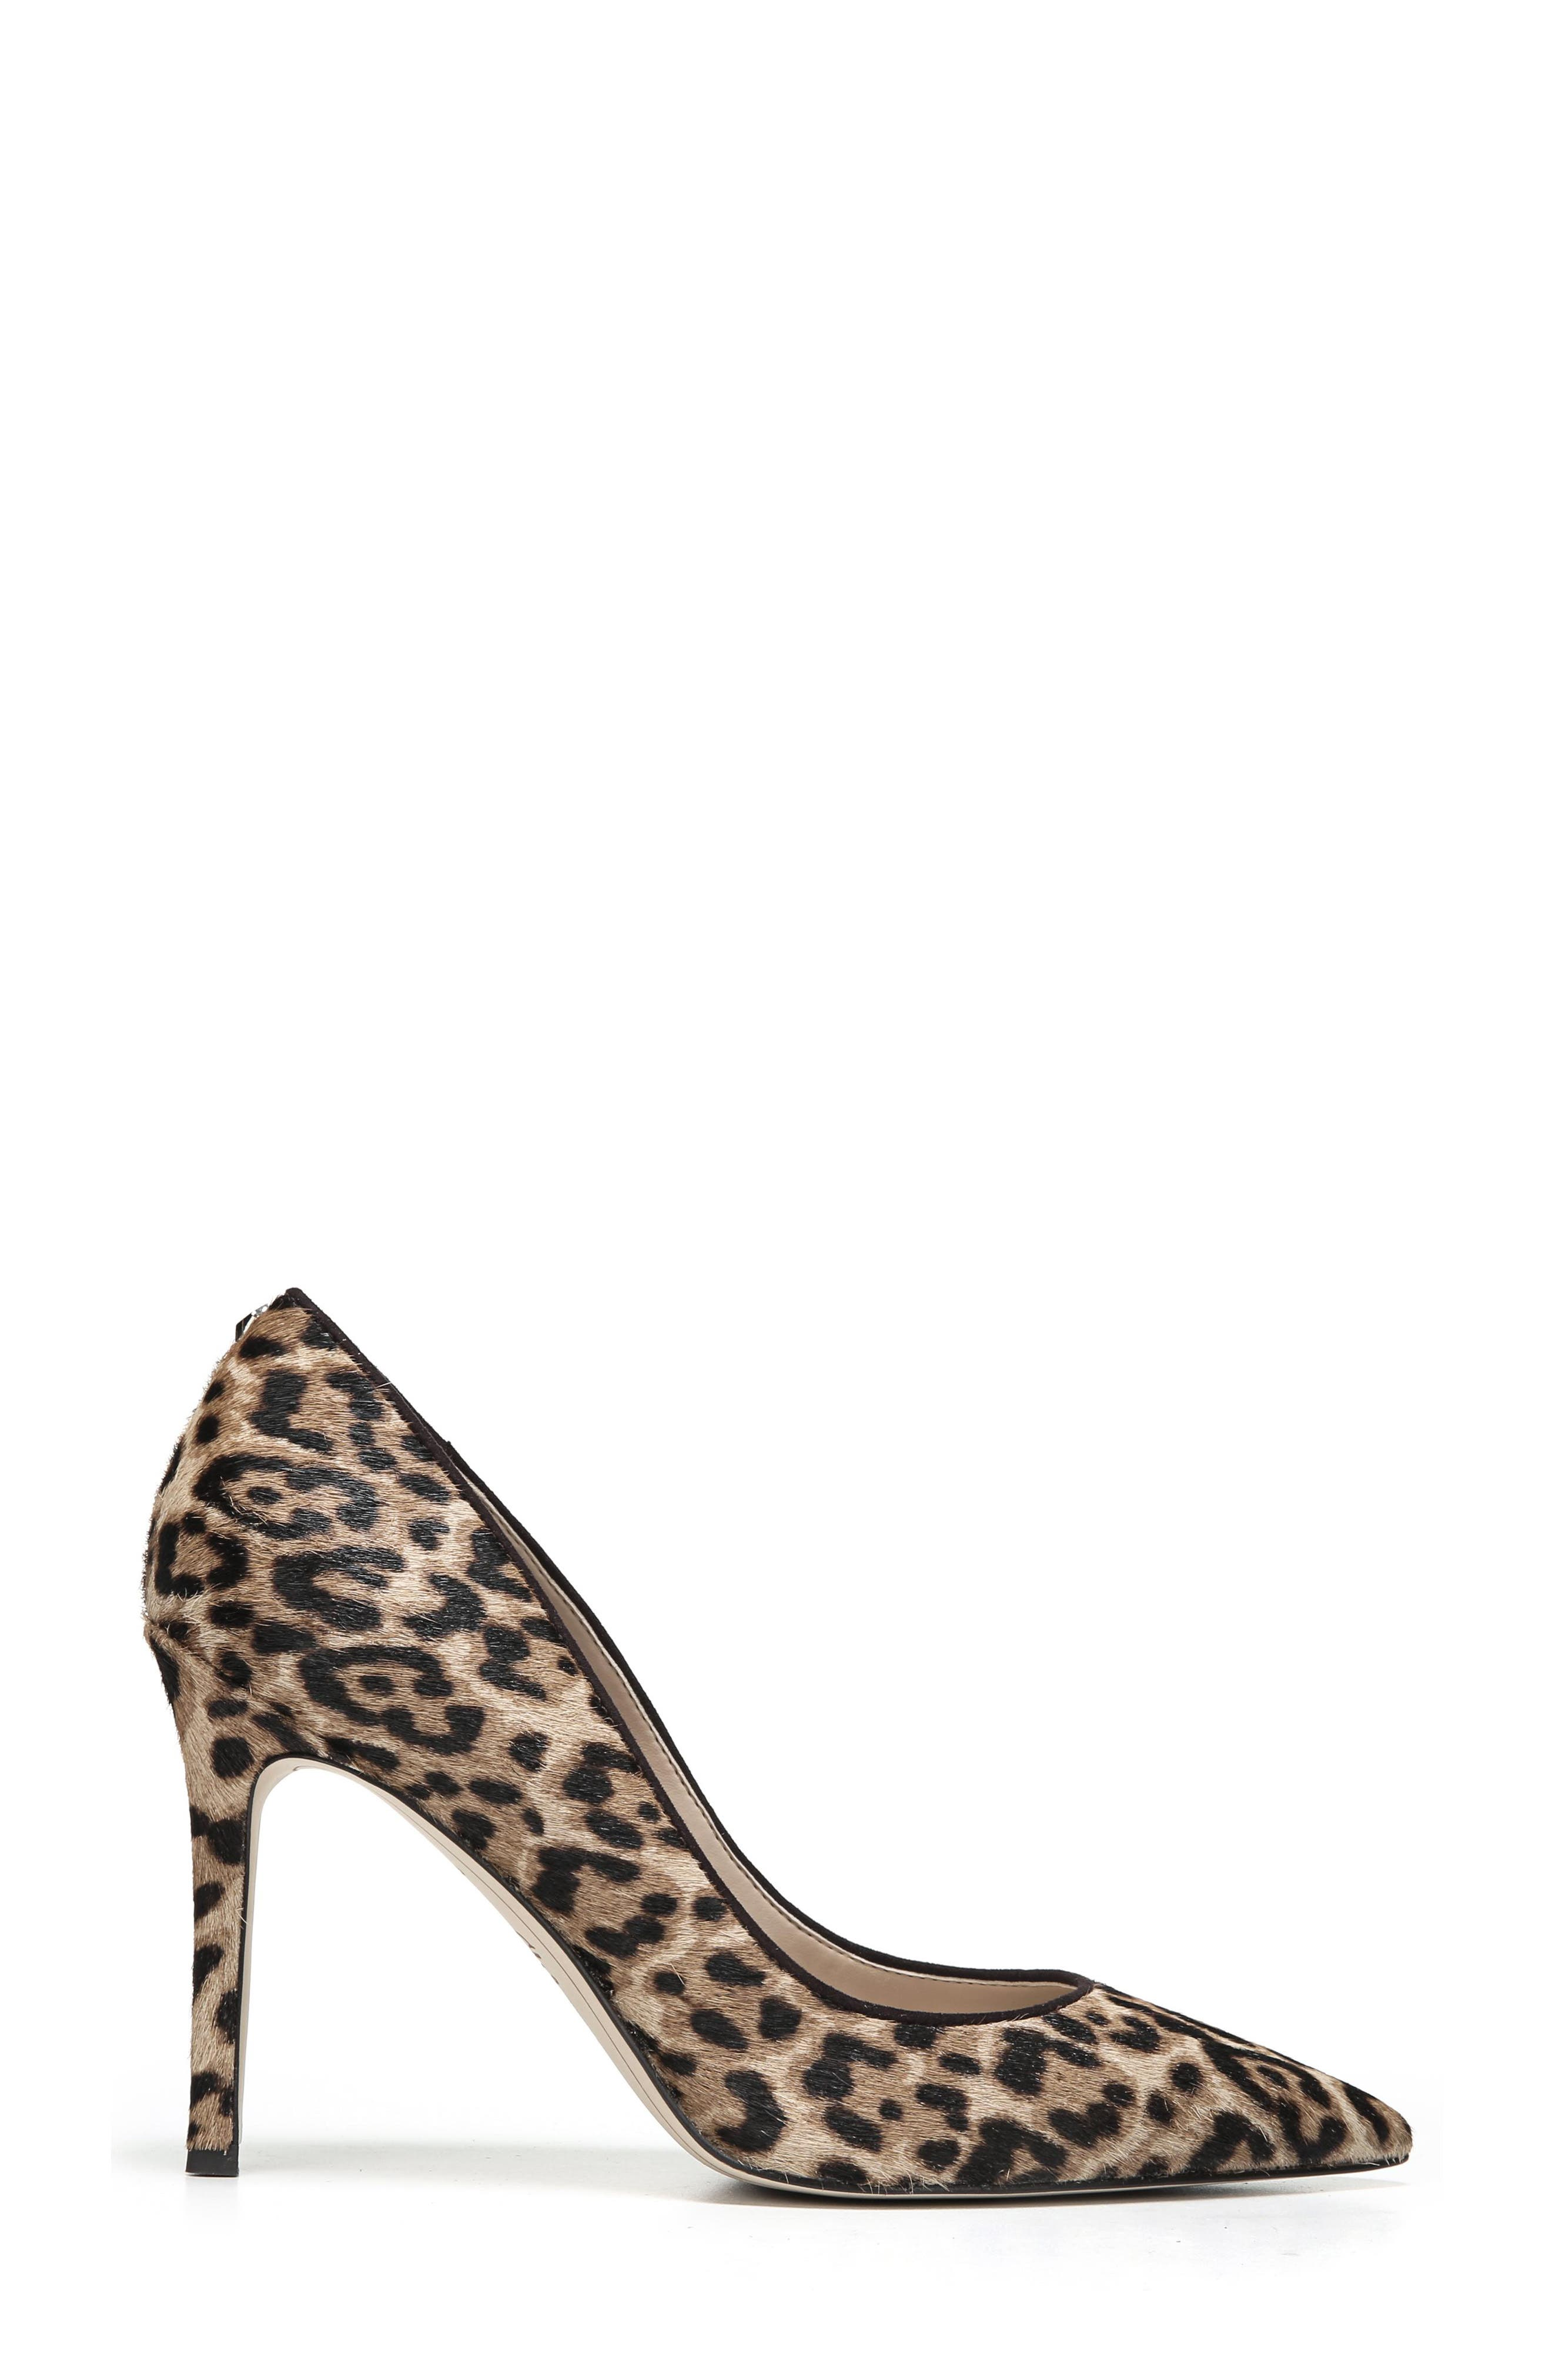 SAM EDELMAN, Hazel Pointy Toe Pump, Alternate thumbnail 3, color, LEOPARD CALF HAIR